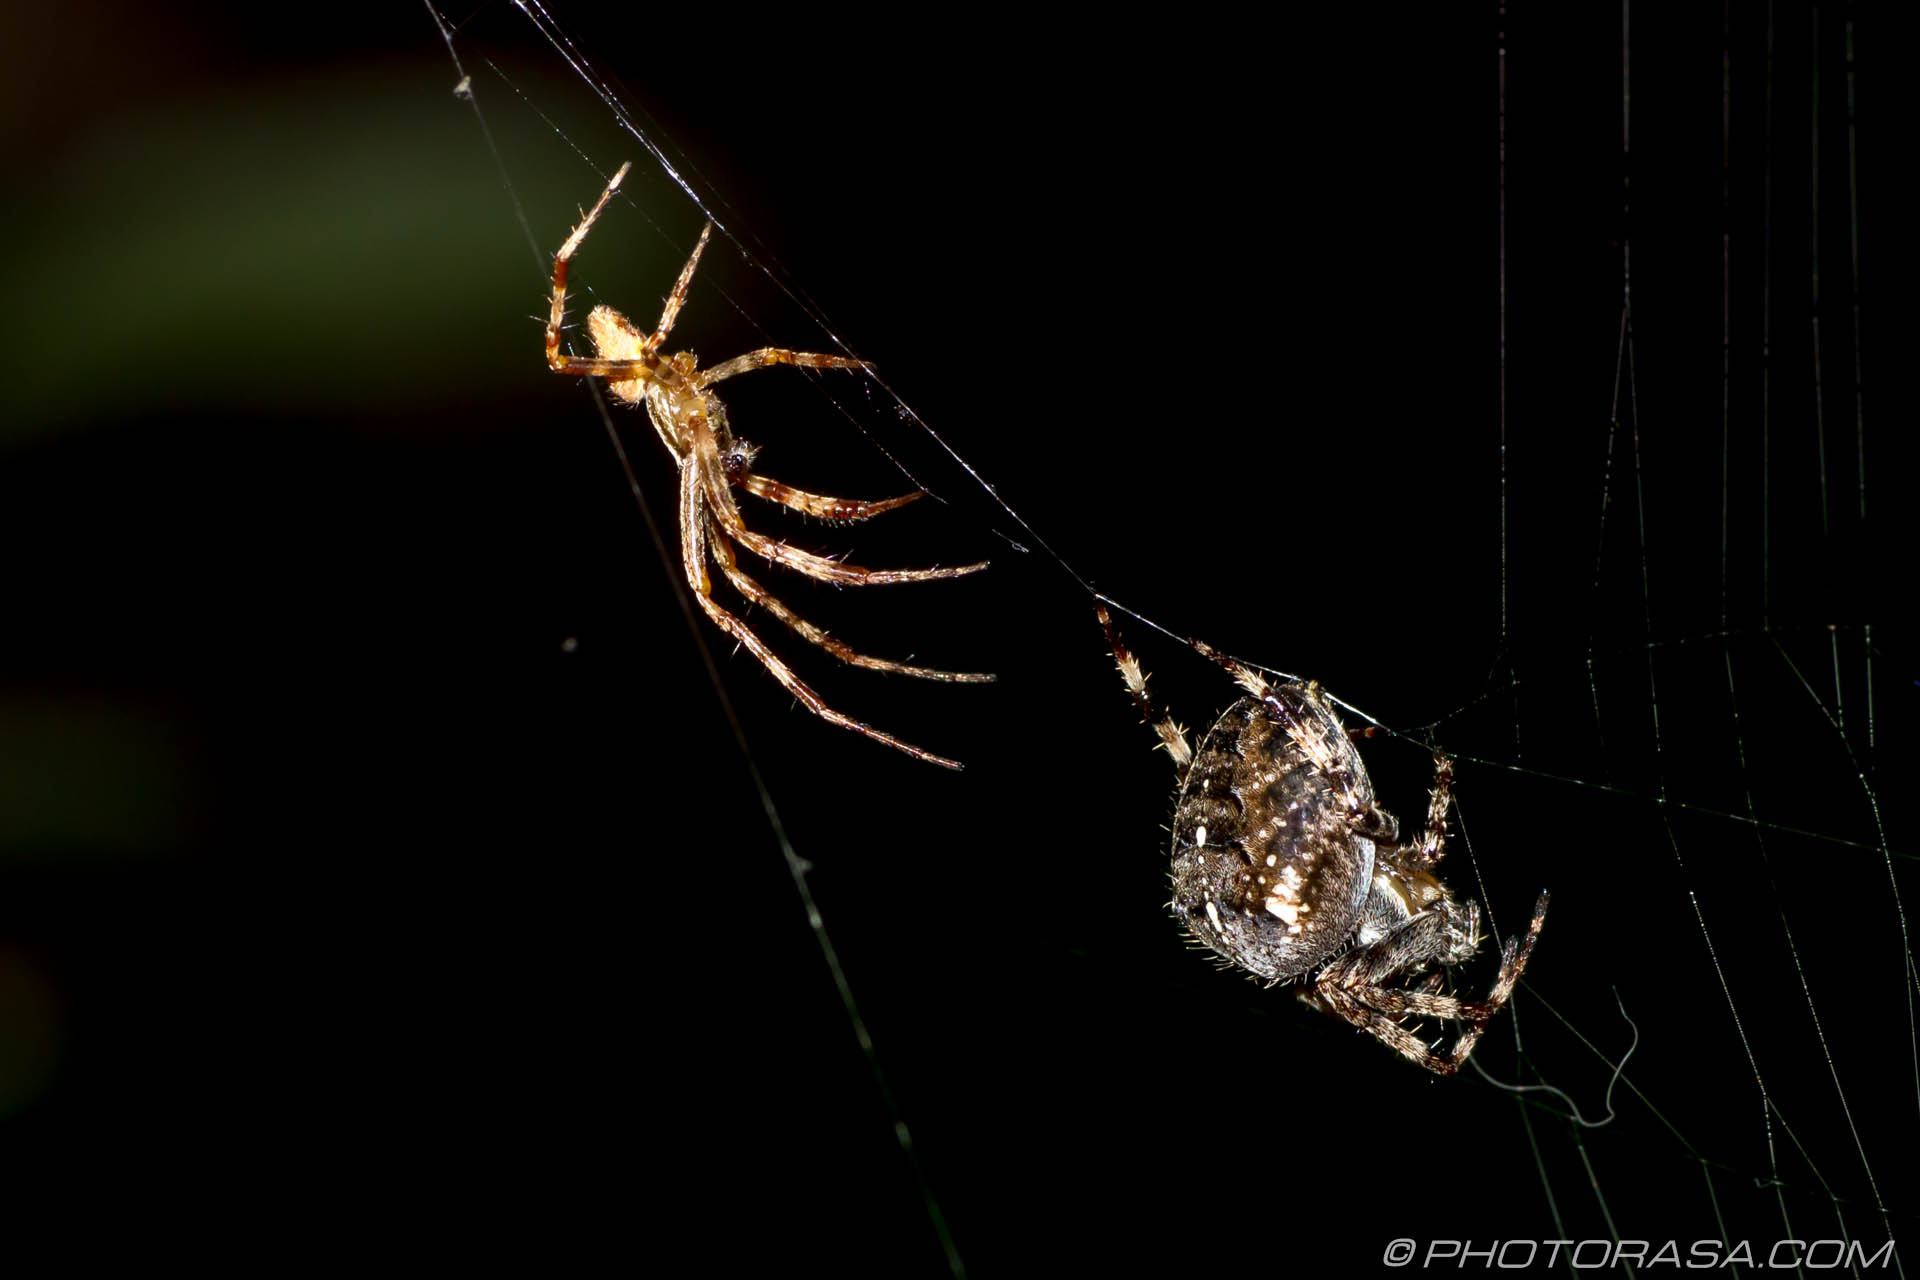 http://photorasa.com/little-large-spider-courtship/approaching-from-behind/